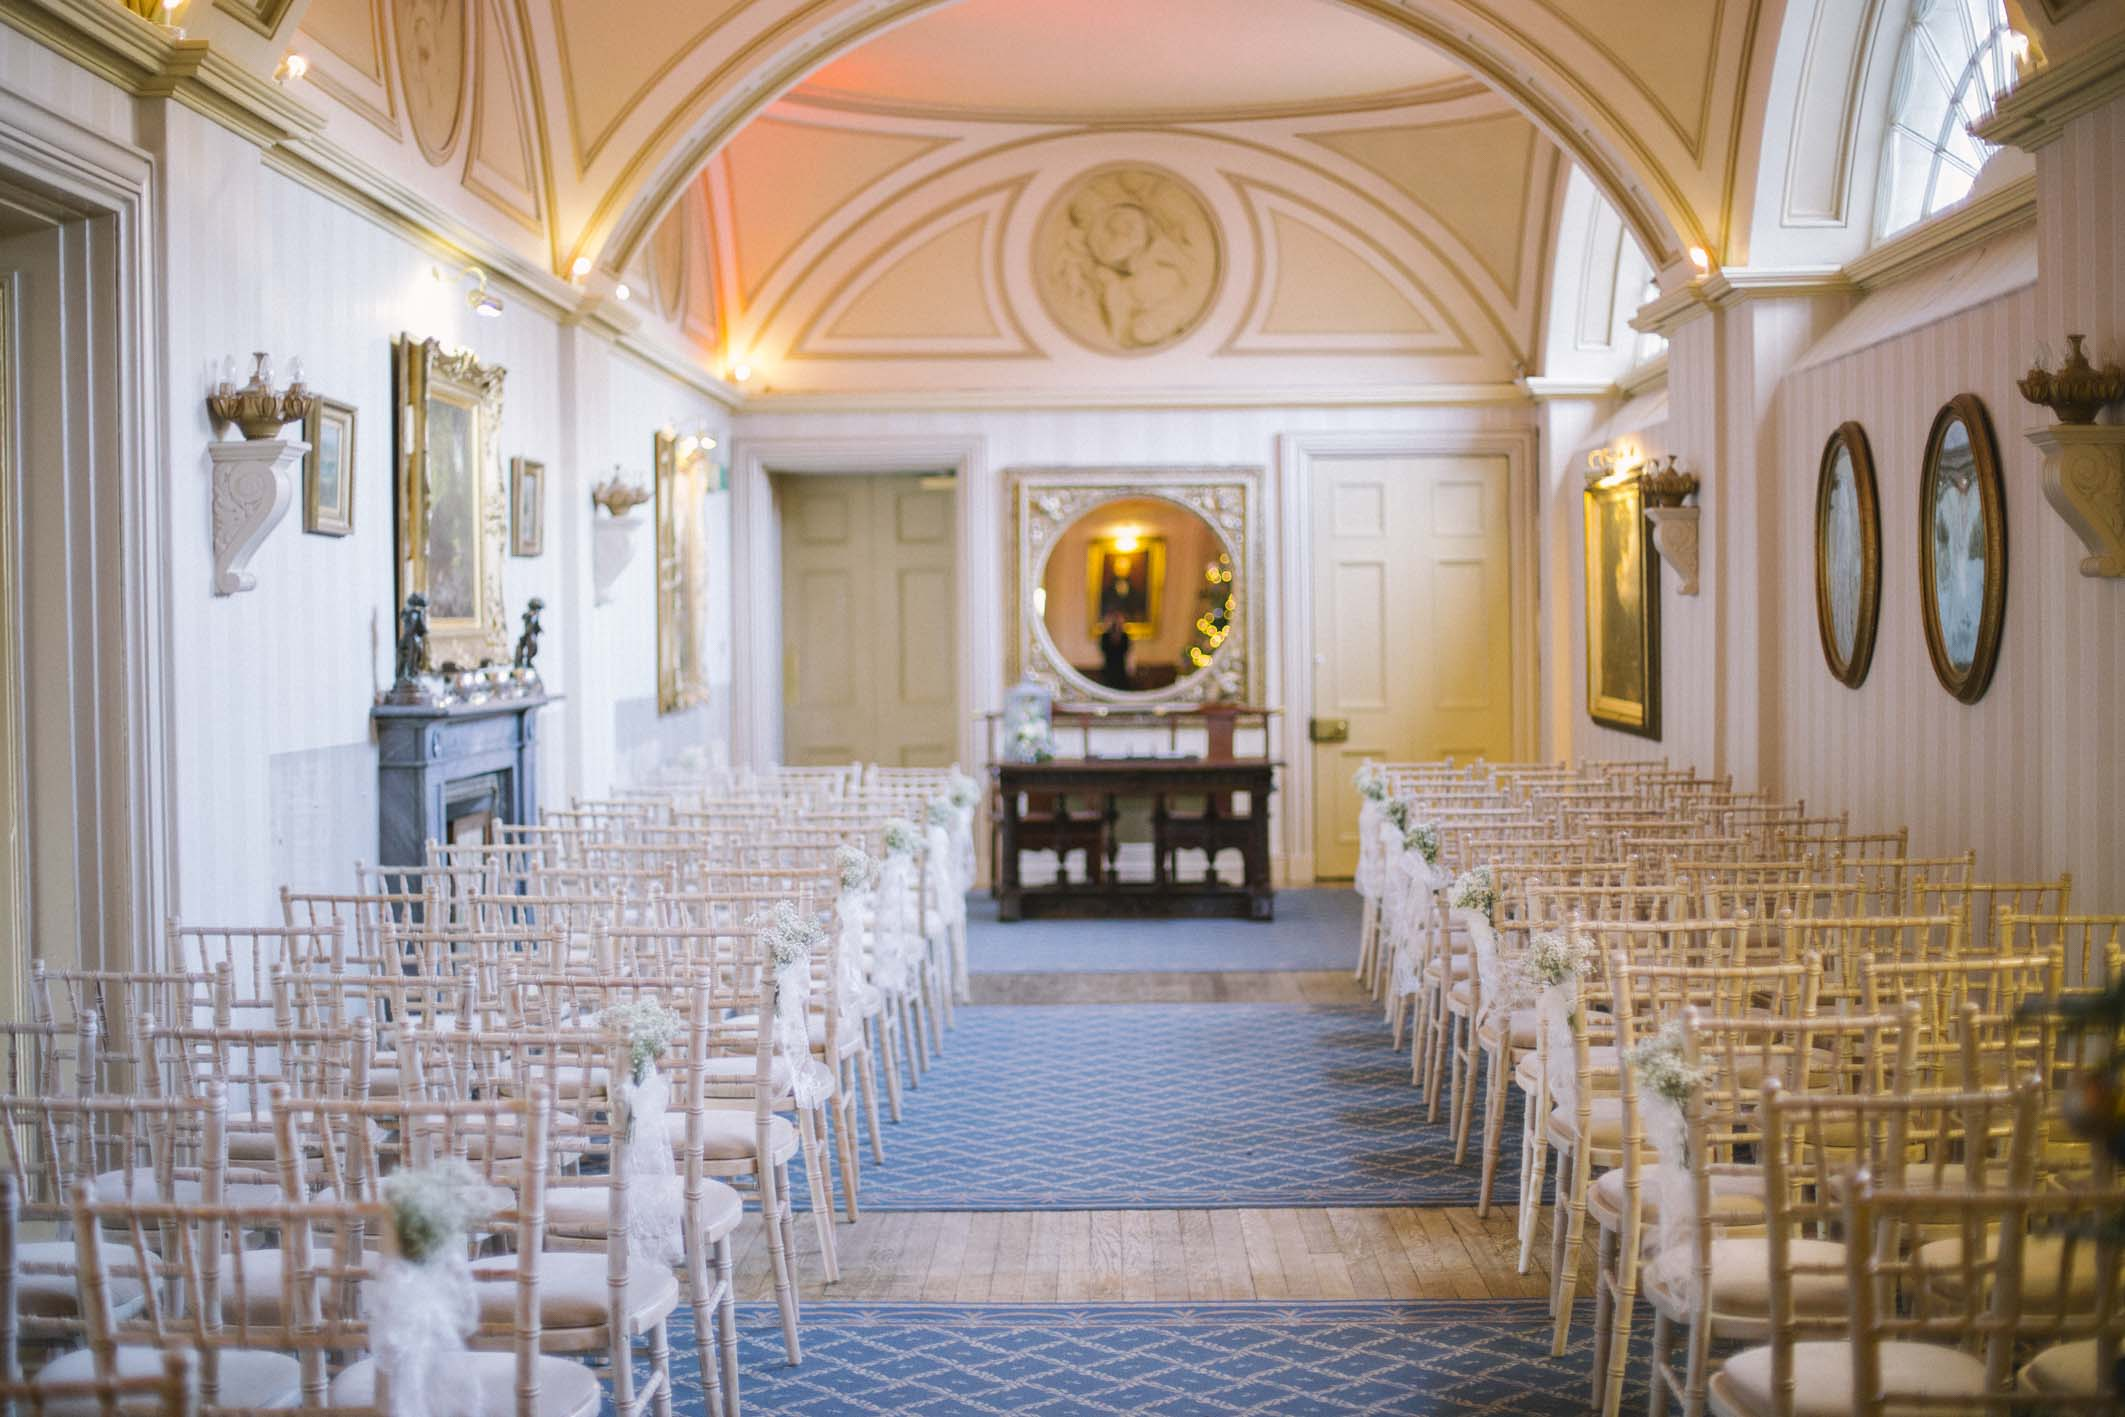 Wedding Ceremony at Long Gallery at Balbirnie House, Fife | Elegant Winter Wedding | Photo by Ceranna Photography